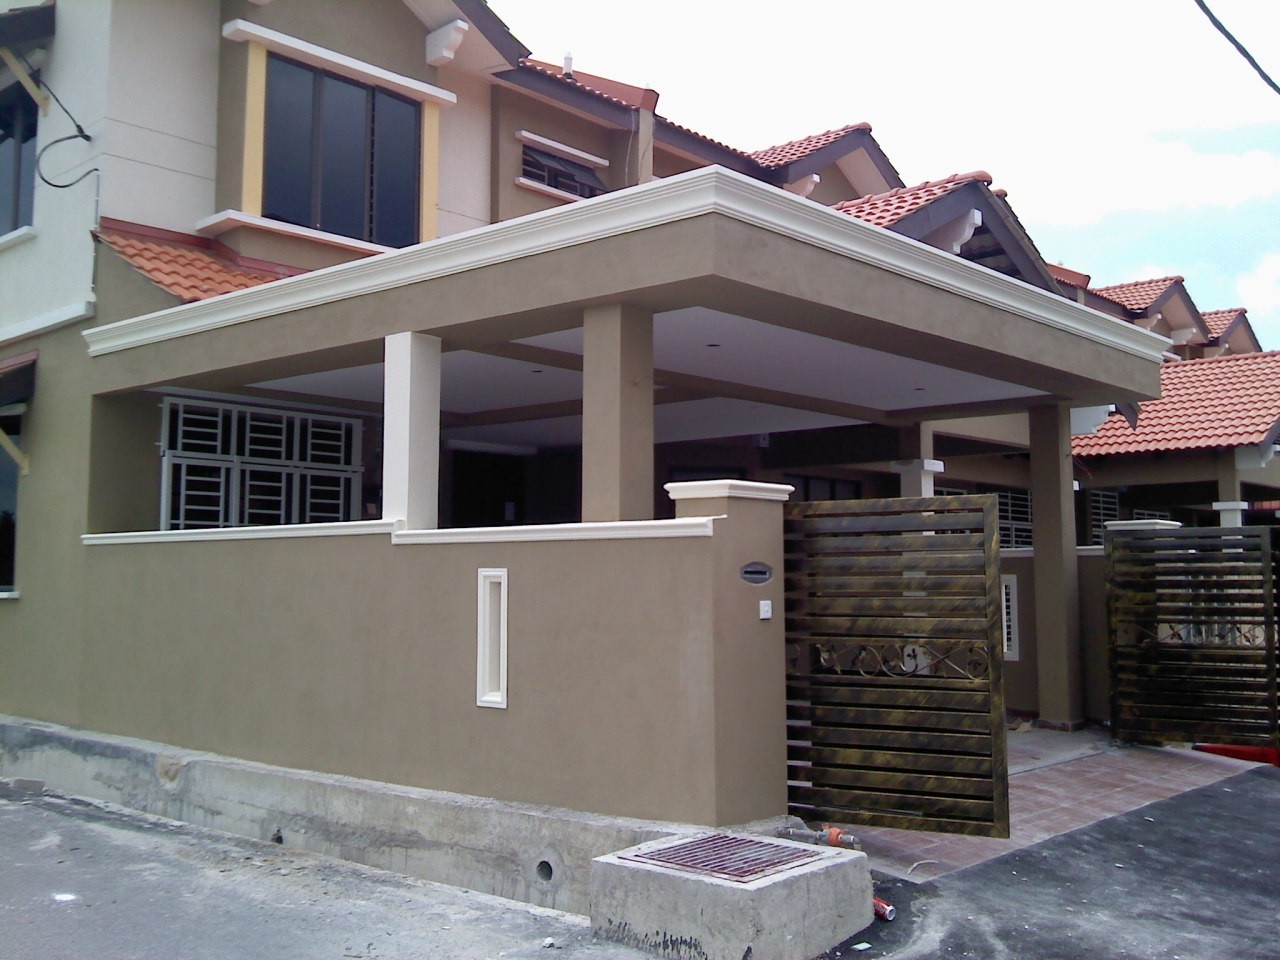 Car Porch Roof Design Malaysia Home Building Plans 32107 Within within sizing 1280 X 960